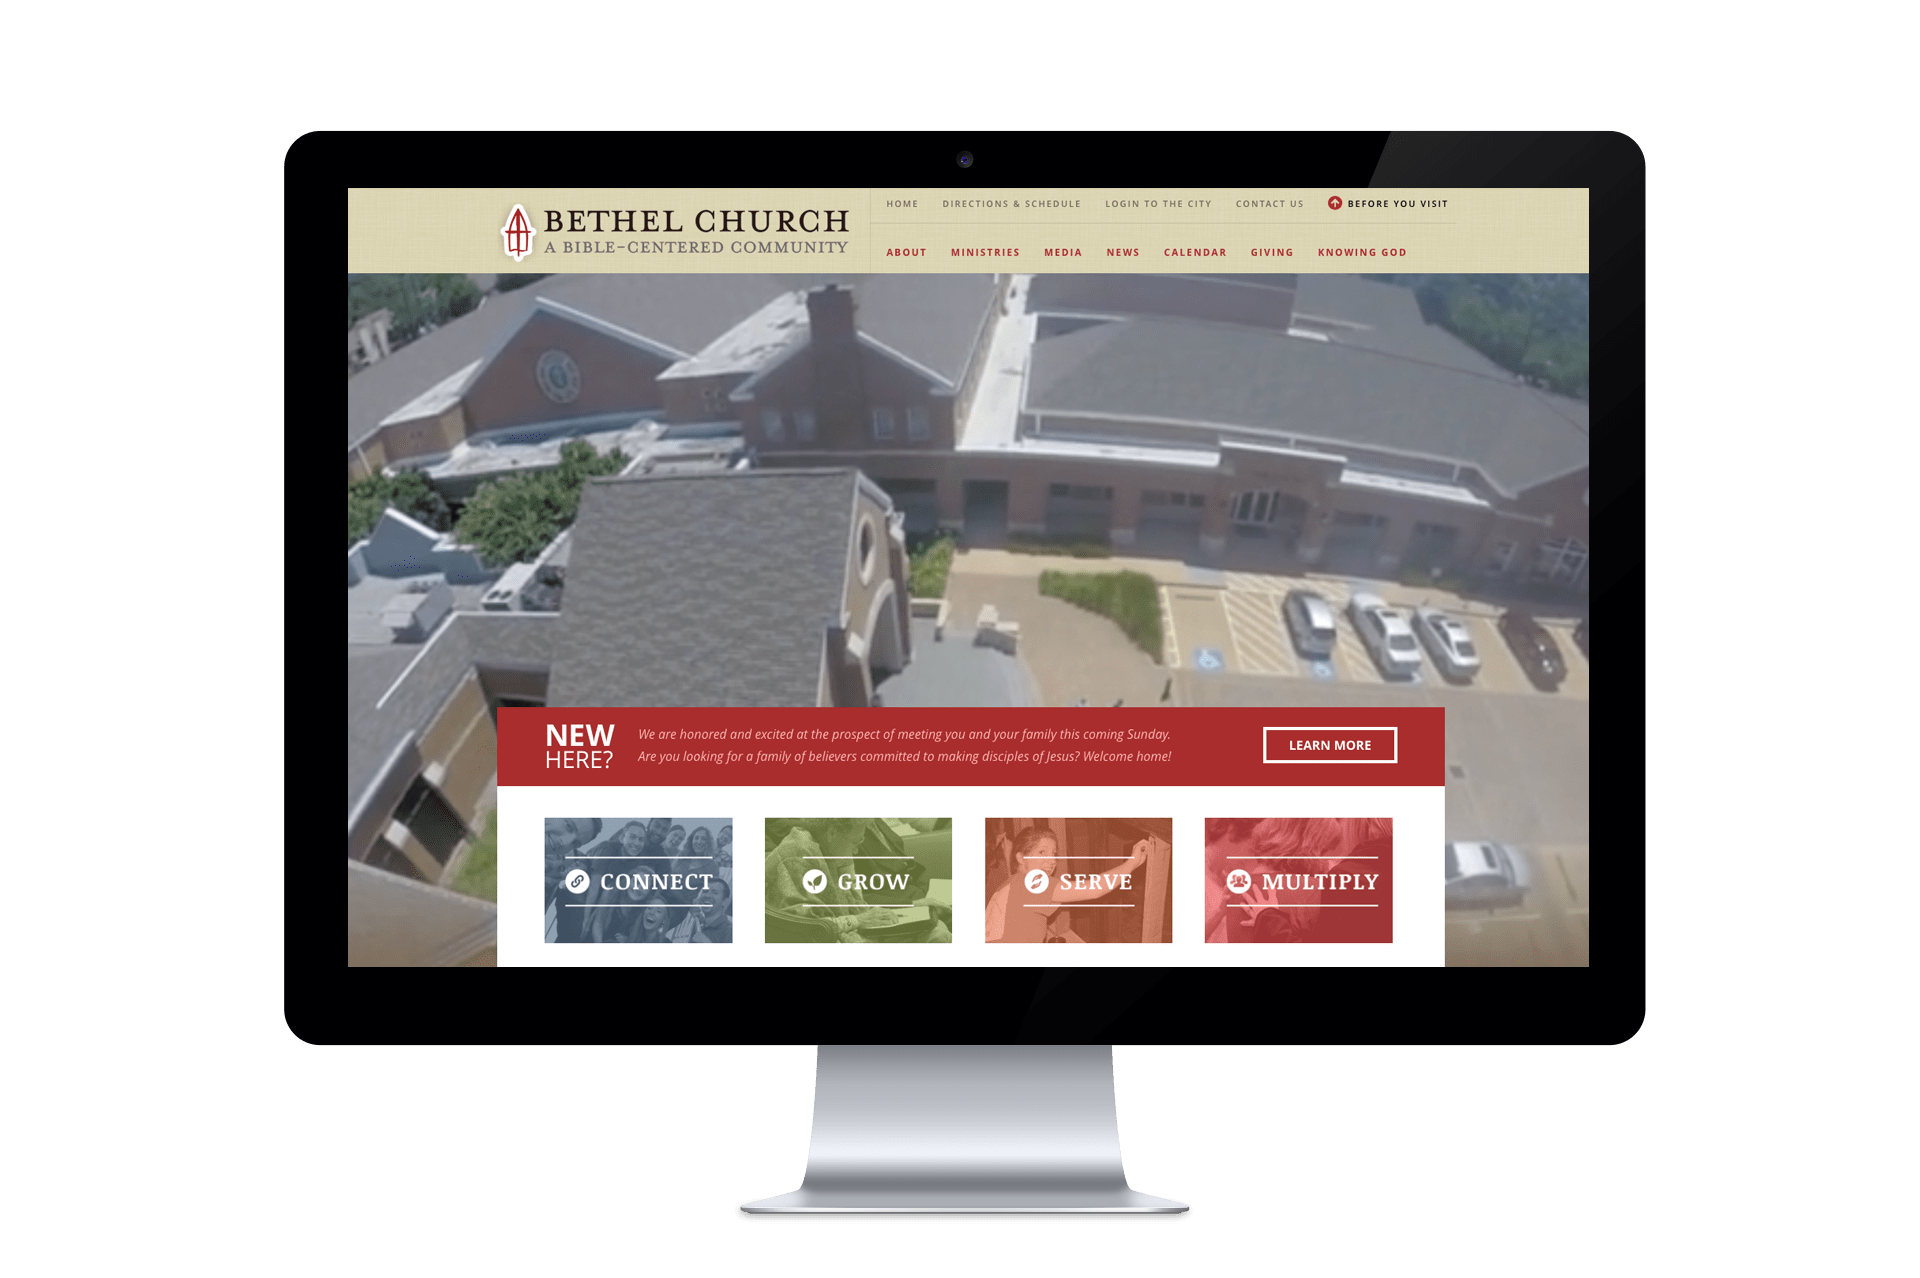 Church Calendar Design.Church Web Design And Marketing In Iowa City Muscatine Cedar